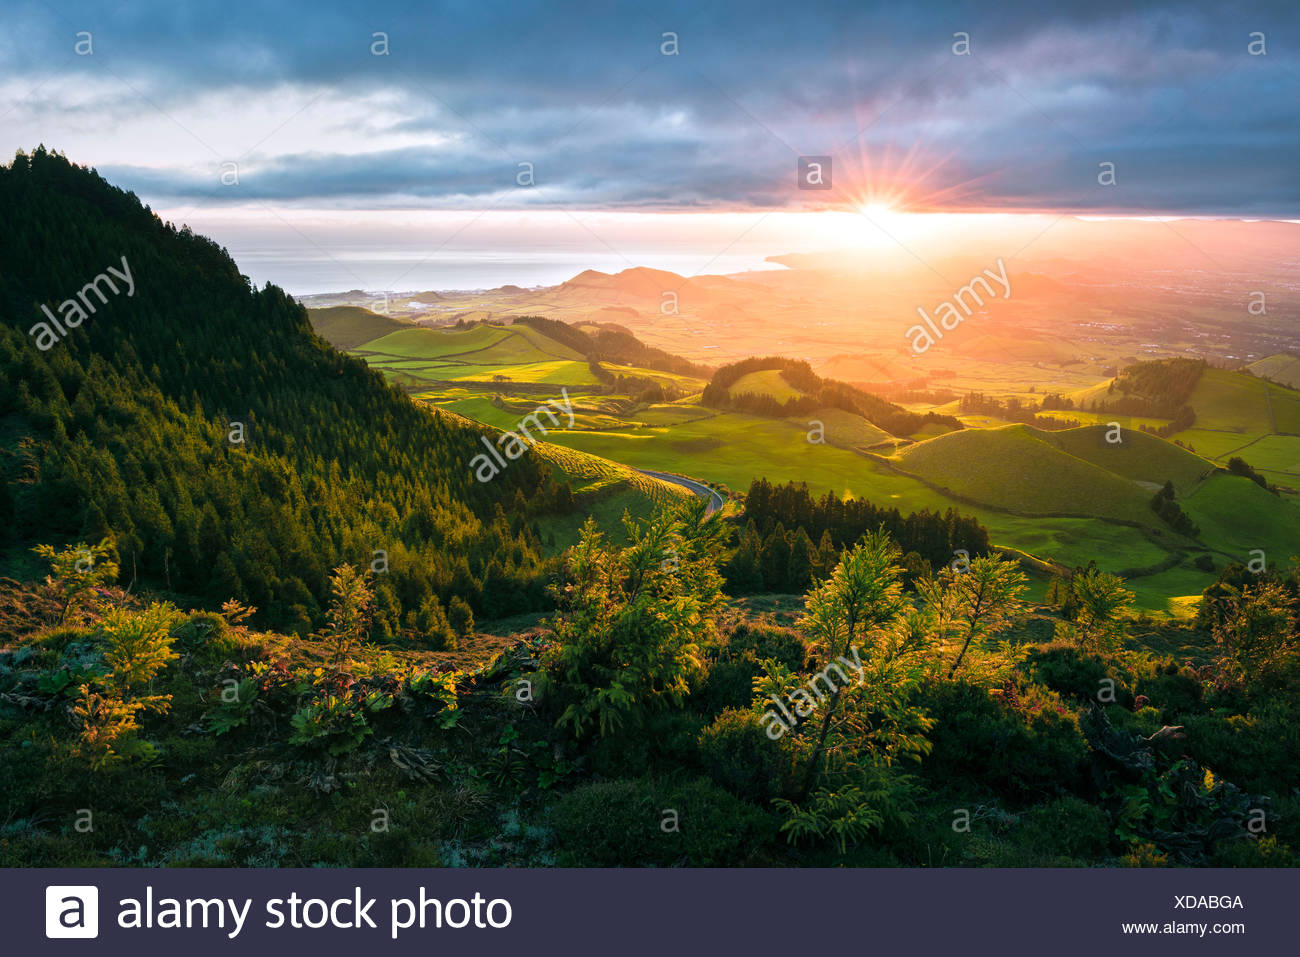 View the Pico Carvao, Sao Miguel, the Azores, Portugal - Stock Image